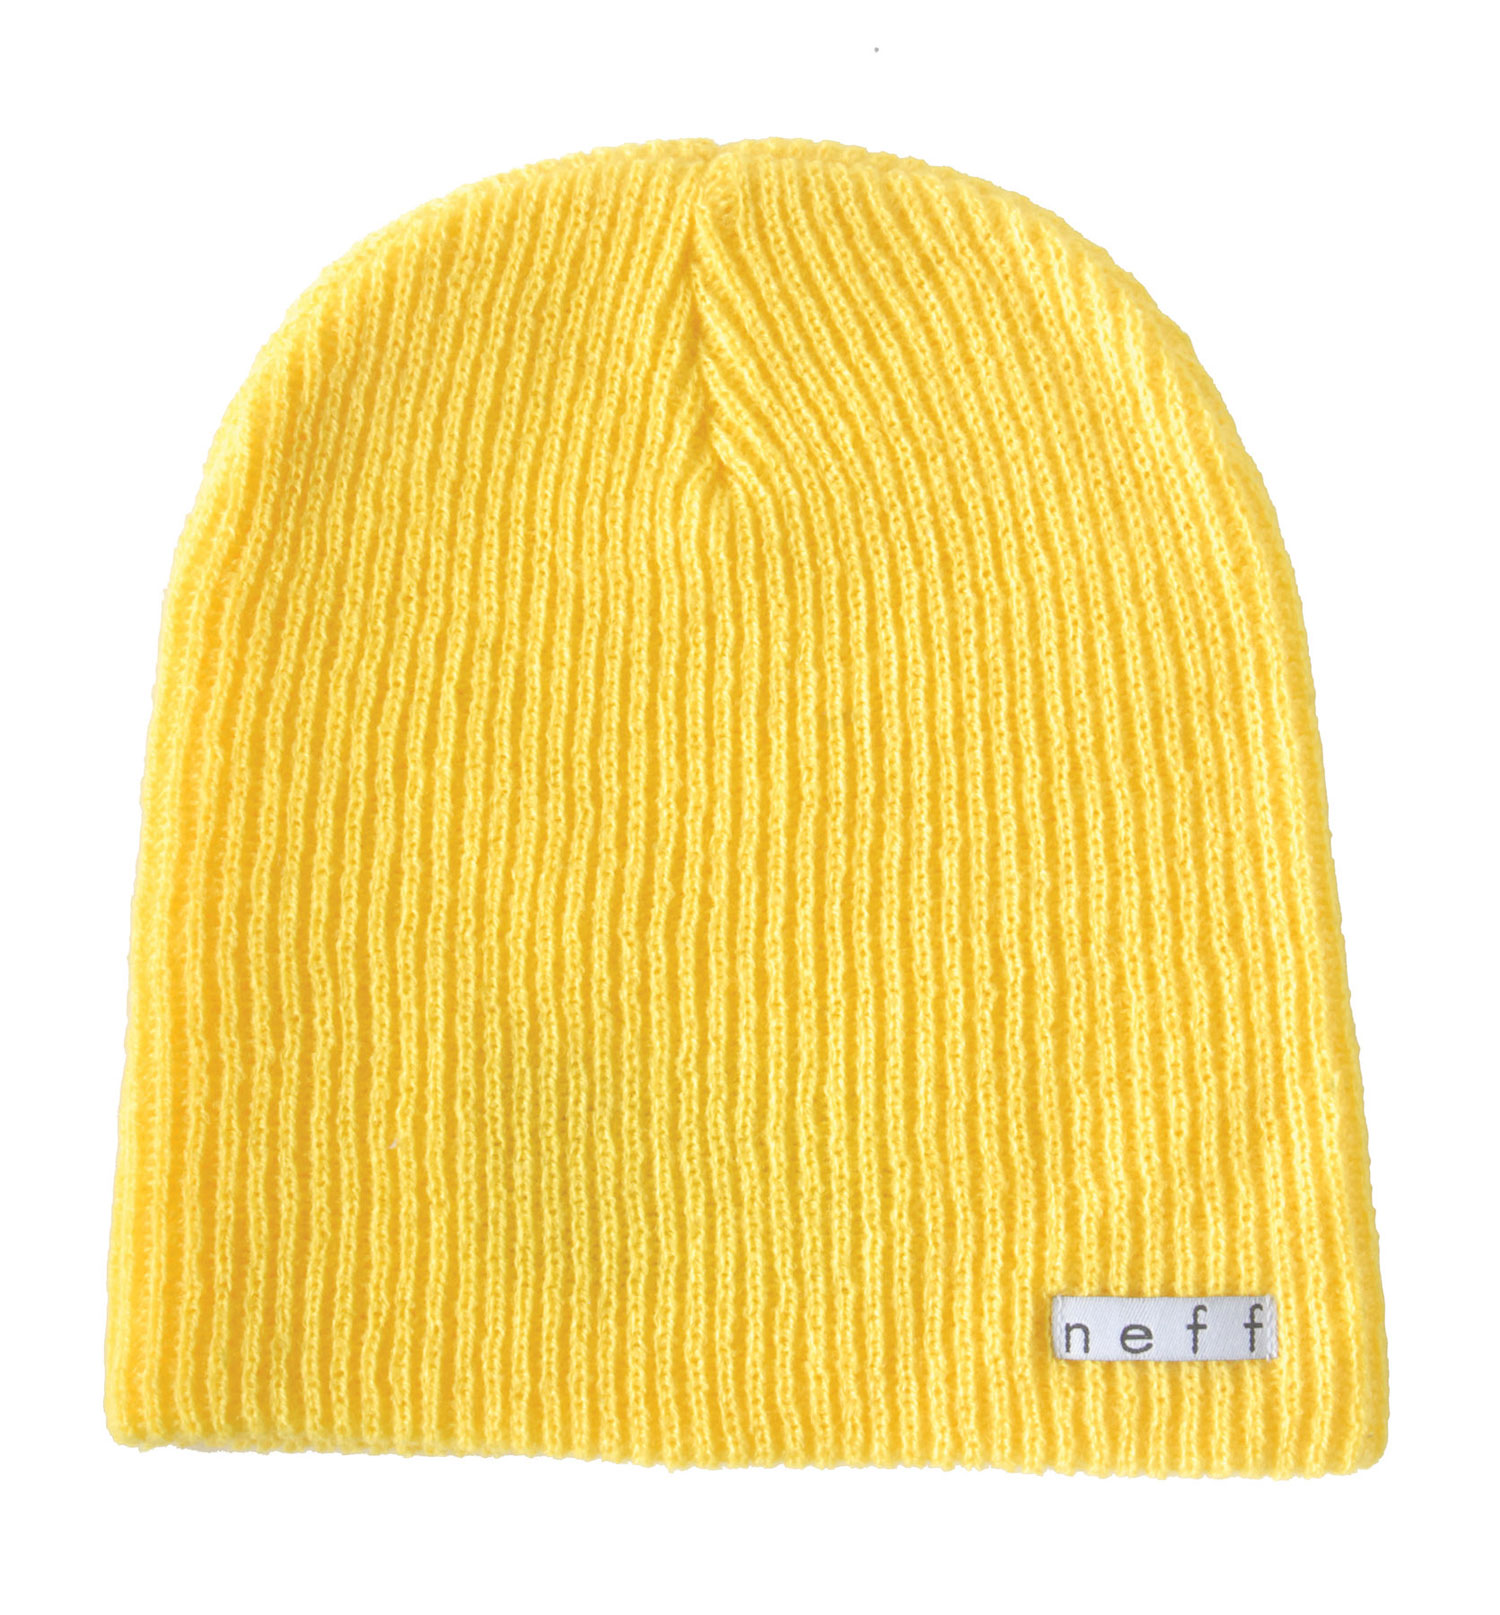 Skateboard Key Features of the Neff Daily Beanie: 100% Acrylic - $16.00